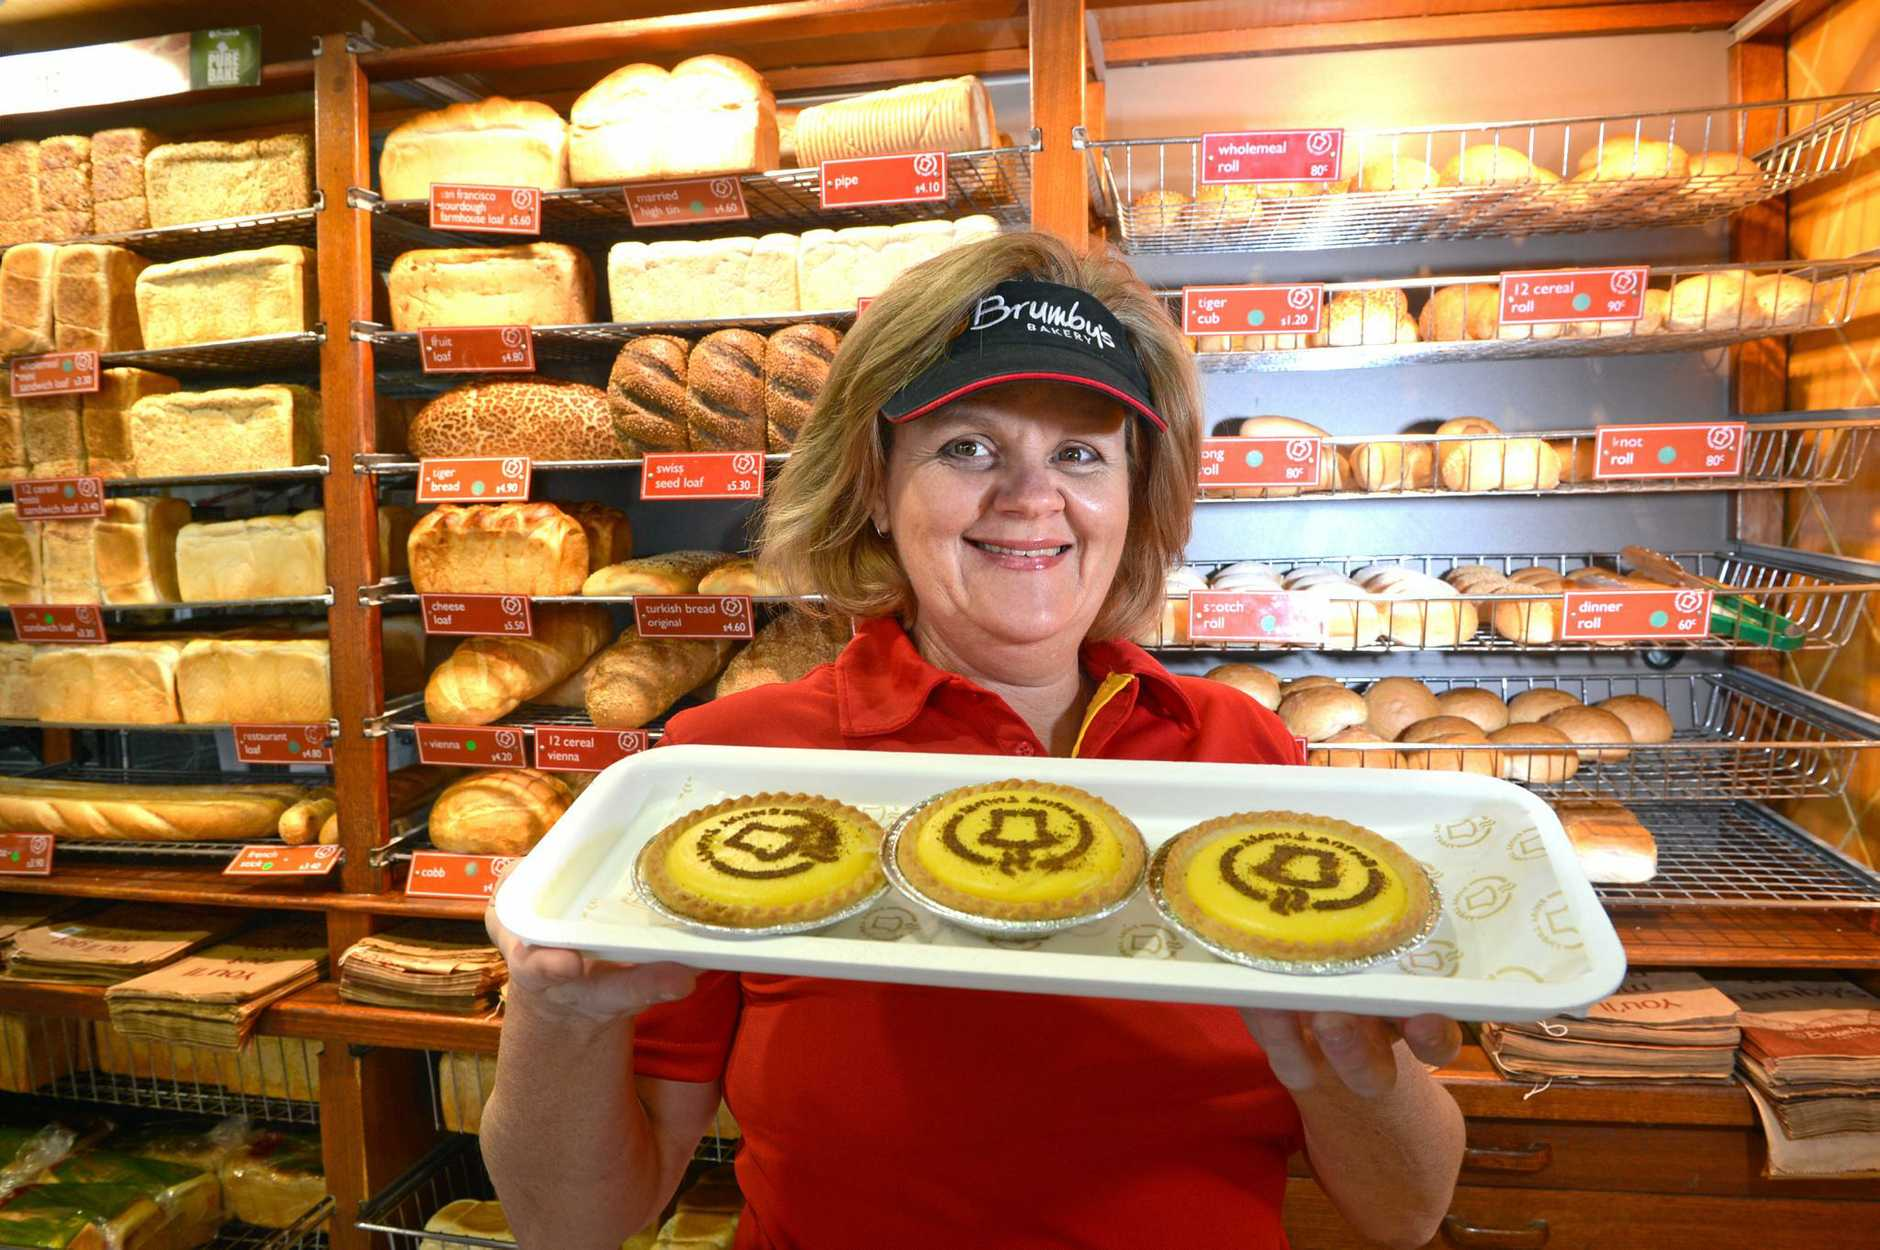 A new Brumby's Bakery will open at Parkhurst soon.